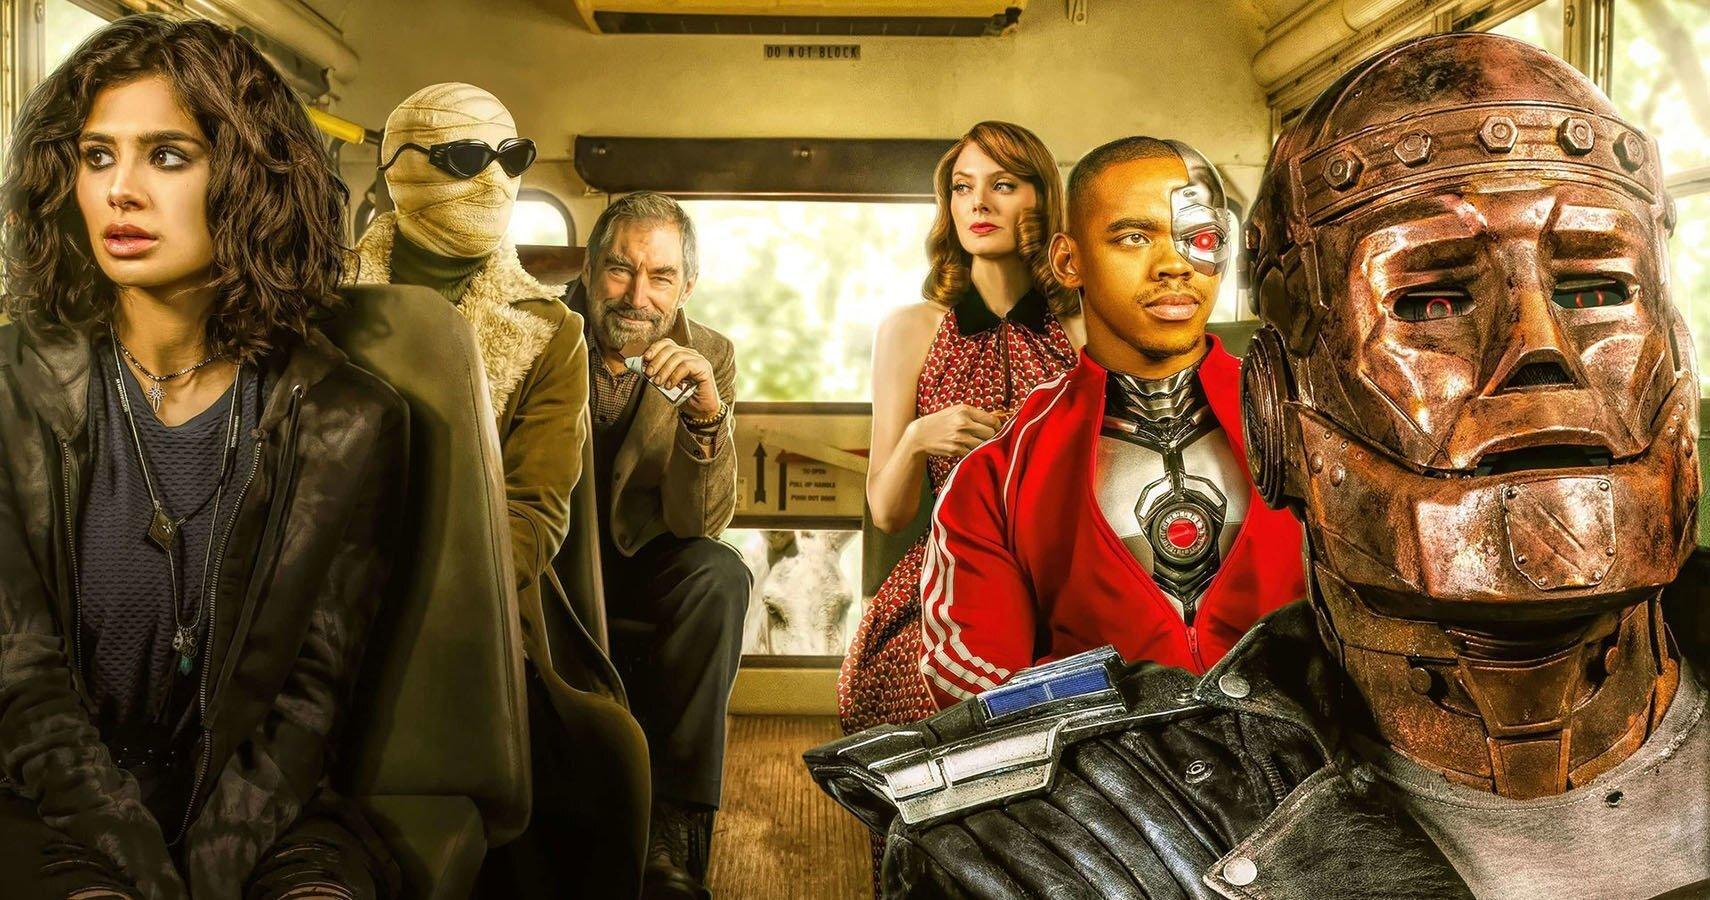 Doom Patrol Season 2 Photos Reveal First Look At New Character